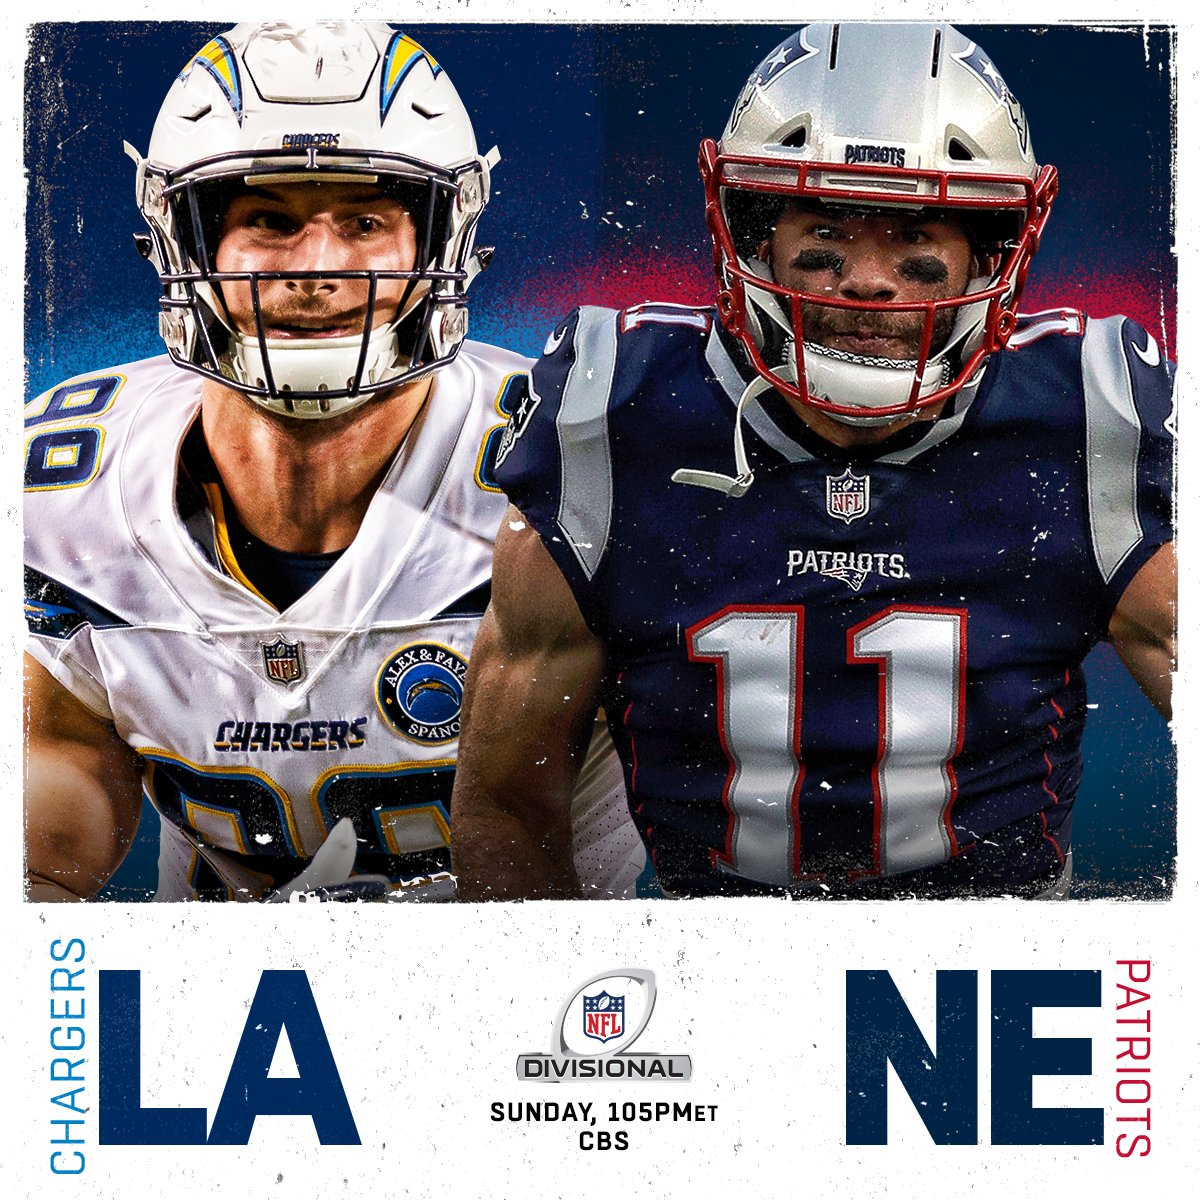 The @Chargers? Or the @Patriots? Who ya got?  ��: #LACvsNE. Sunday on CBS (1:05pm ET) https://t.co/rwPZcOrZHb